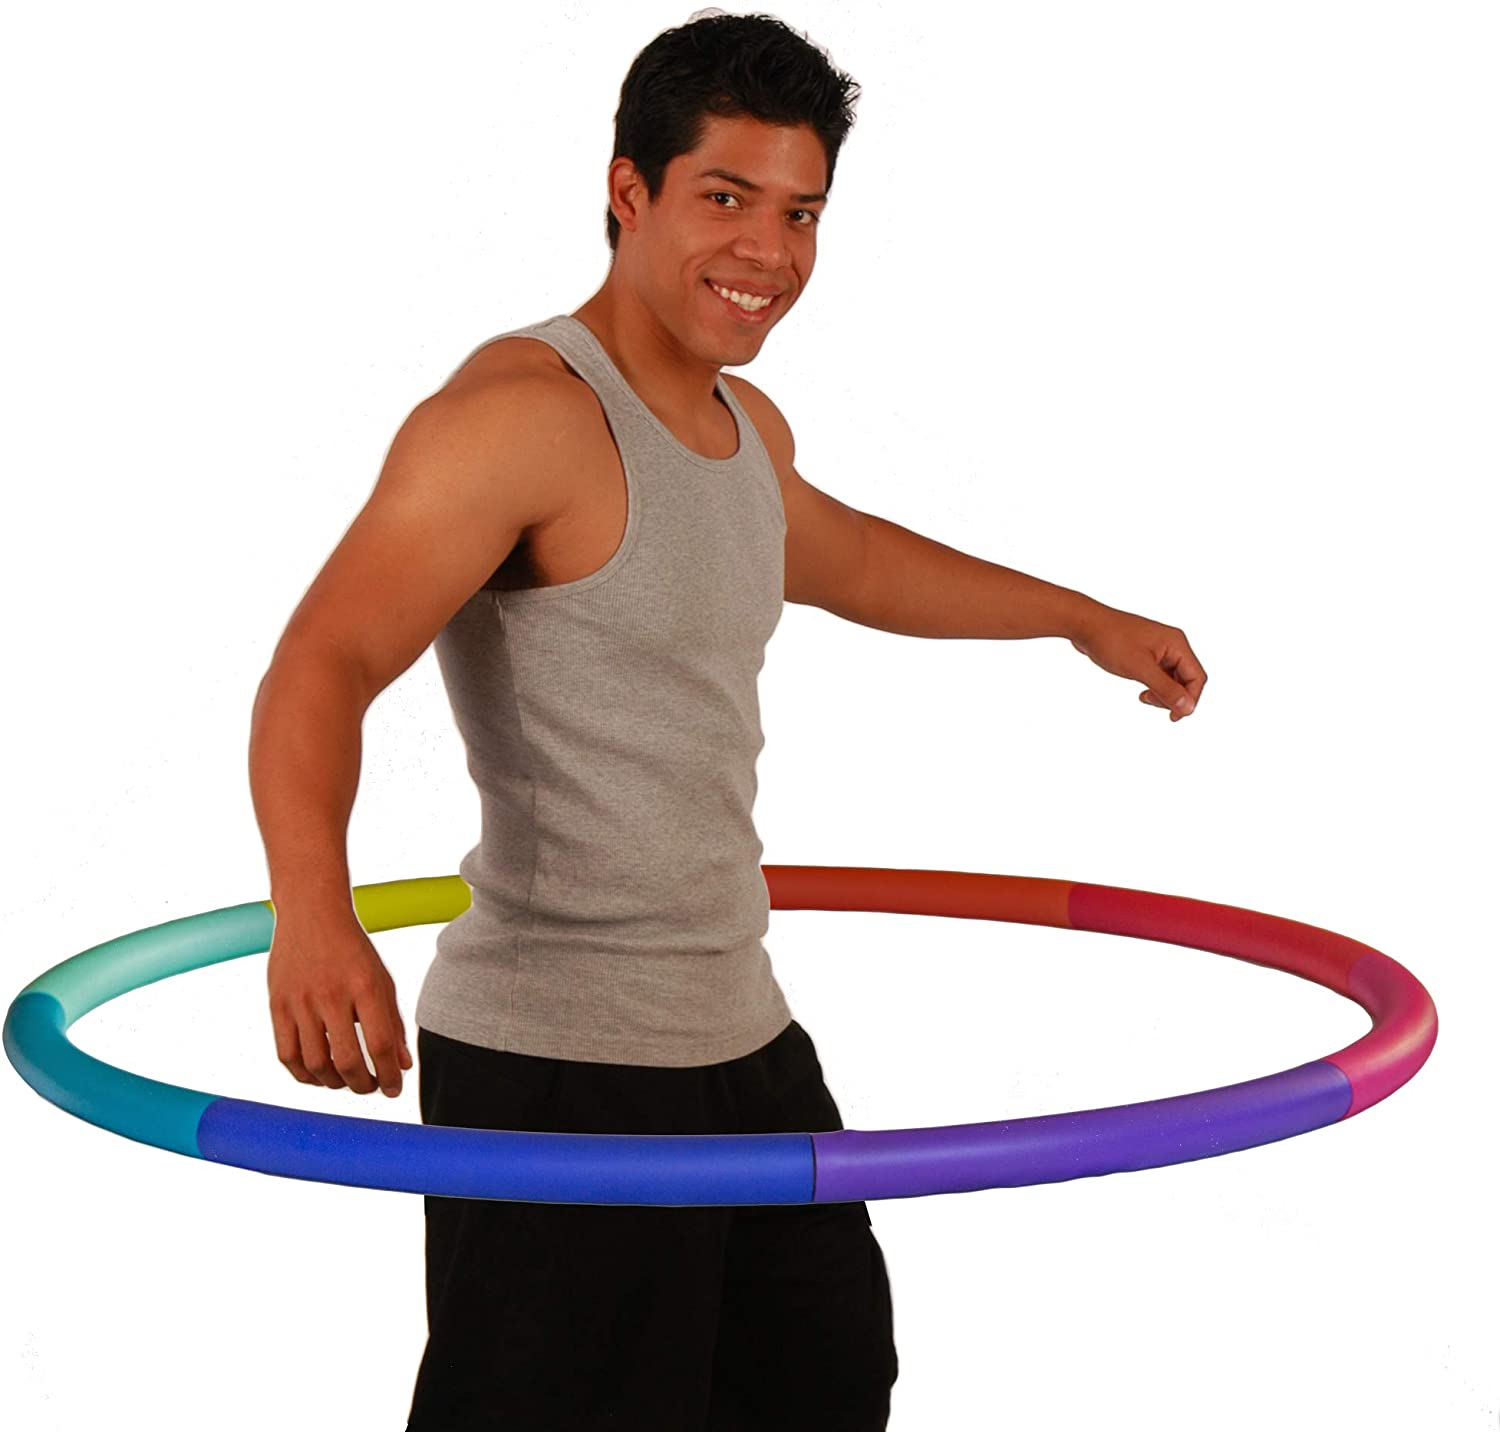 Exercise Hoola Hoop with Smooth Performance Foam Weighted Hula Hoop for Adults Adjustable Adult Fitness Hoops Premium Quality and Soft Padding Exercise With Resistance Bands